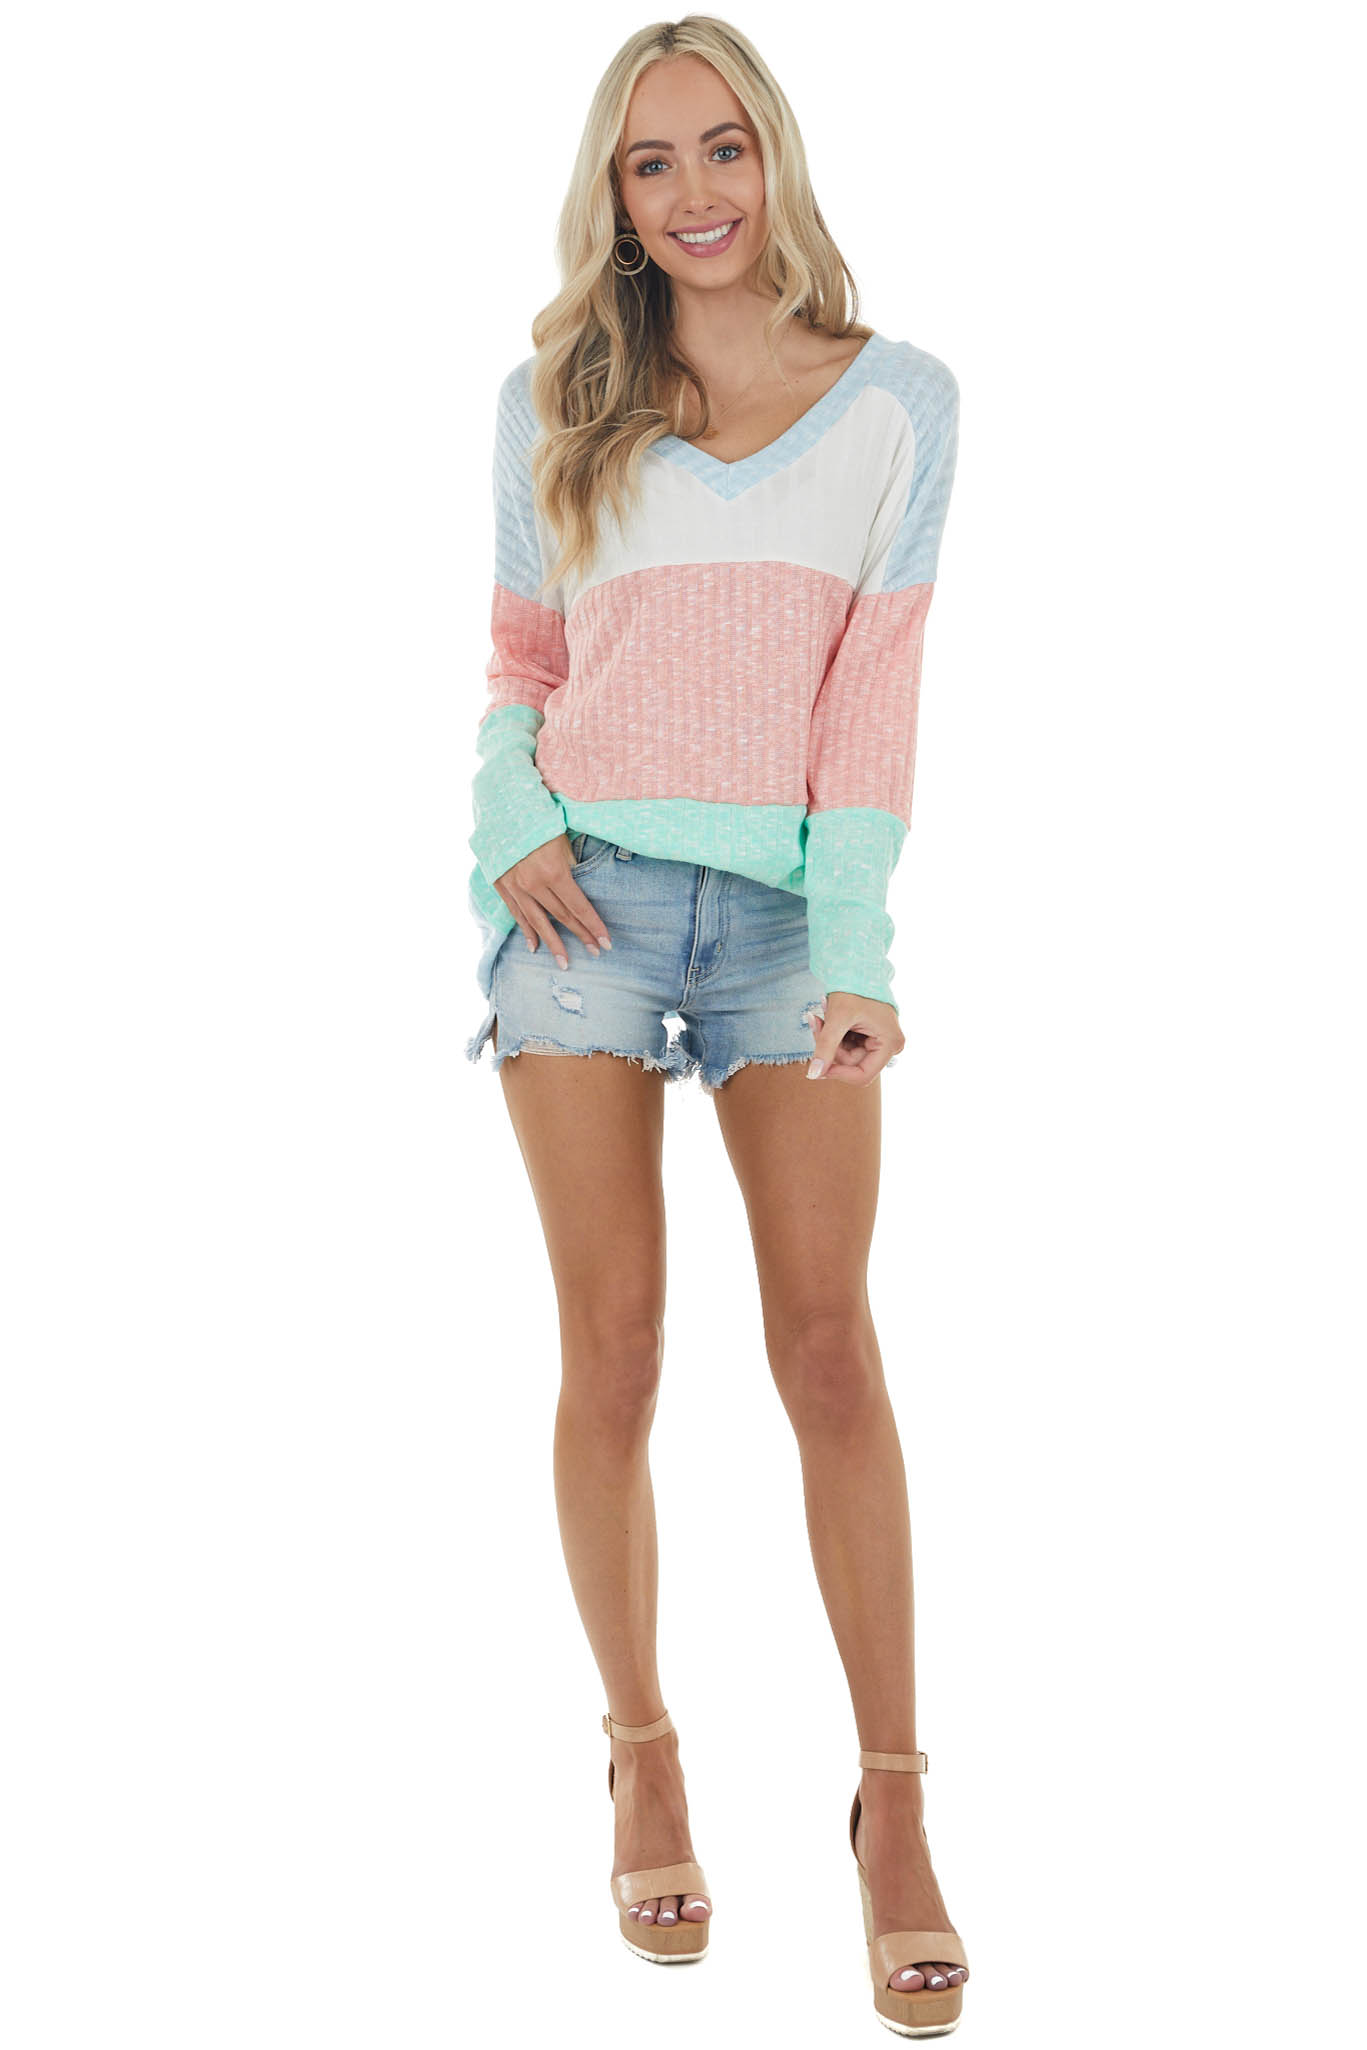 vIvory and Coral Colorblock Knit Top with Textured Ribbing